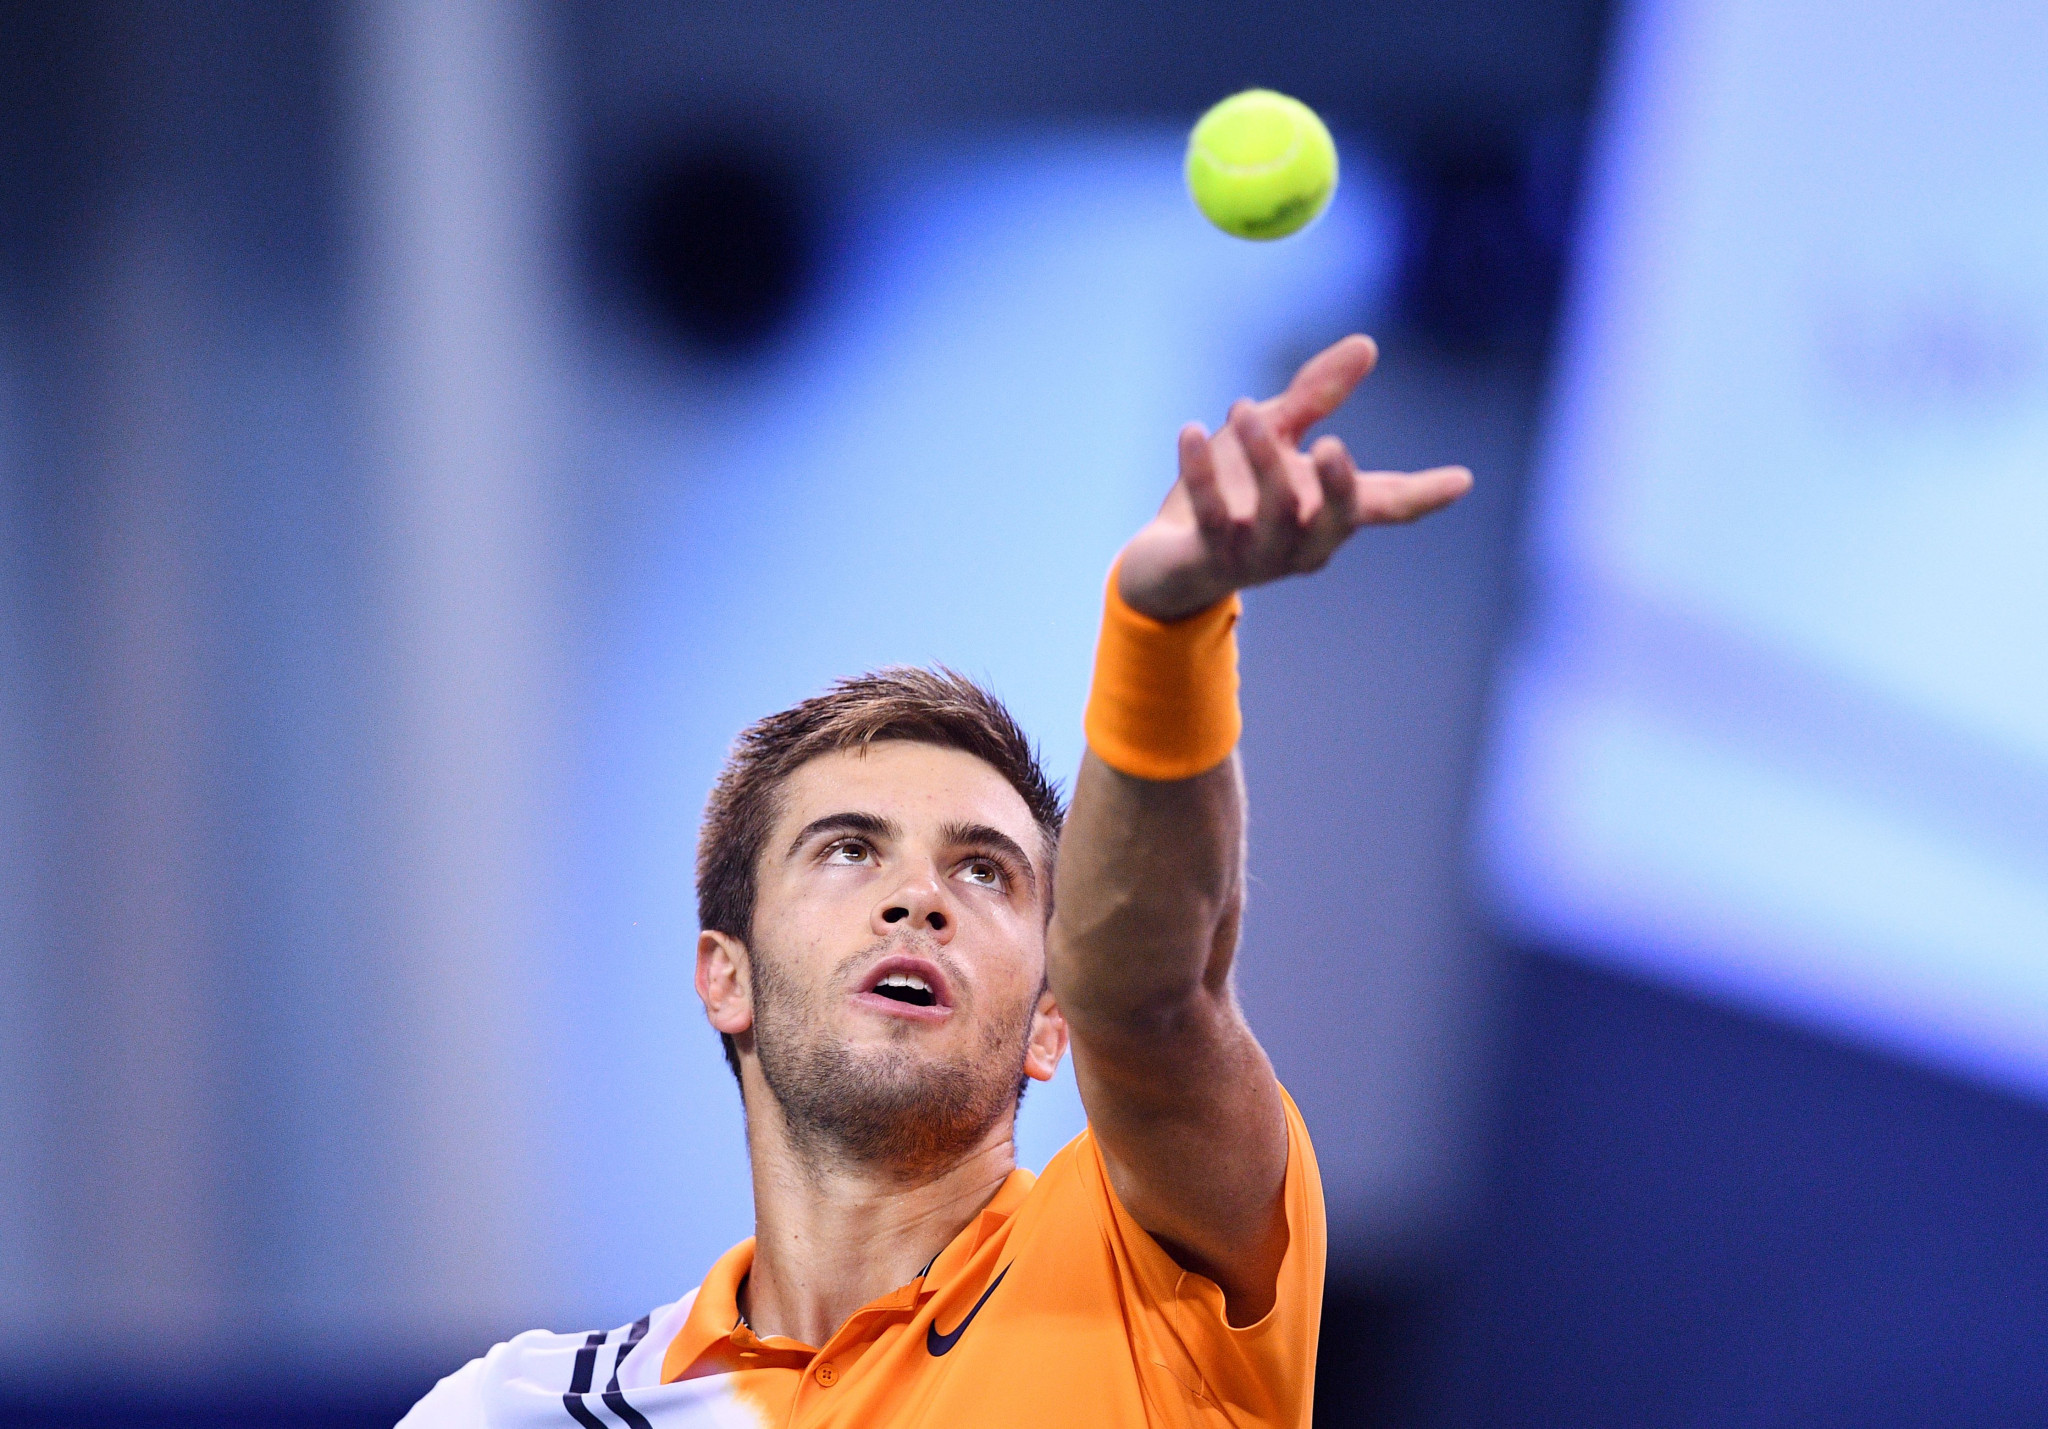 Coric knocks out Federer to reach Shanghai Masters final